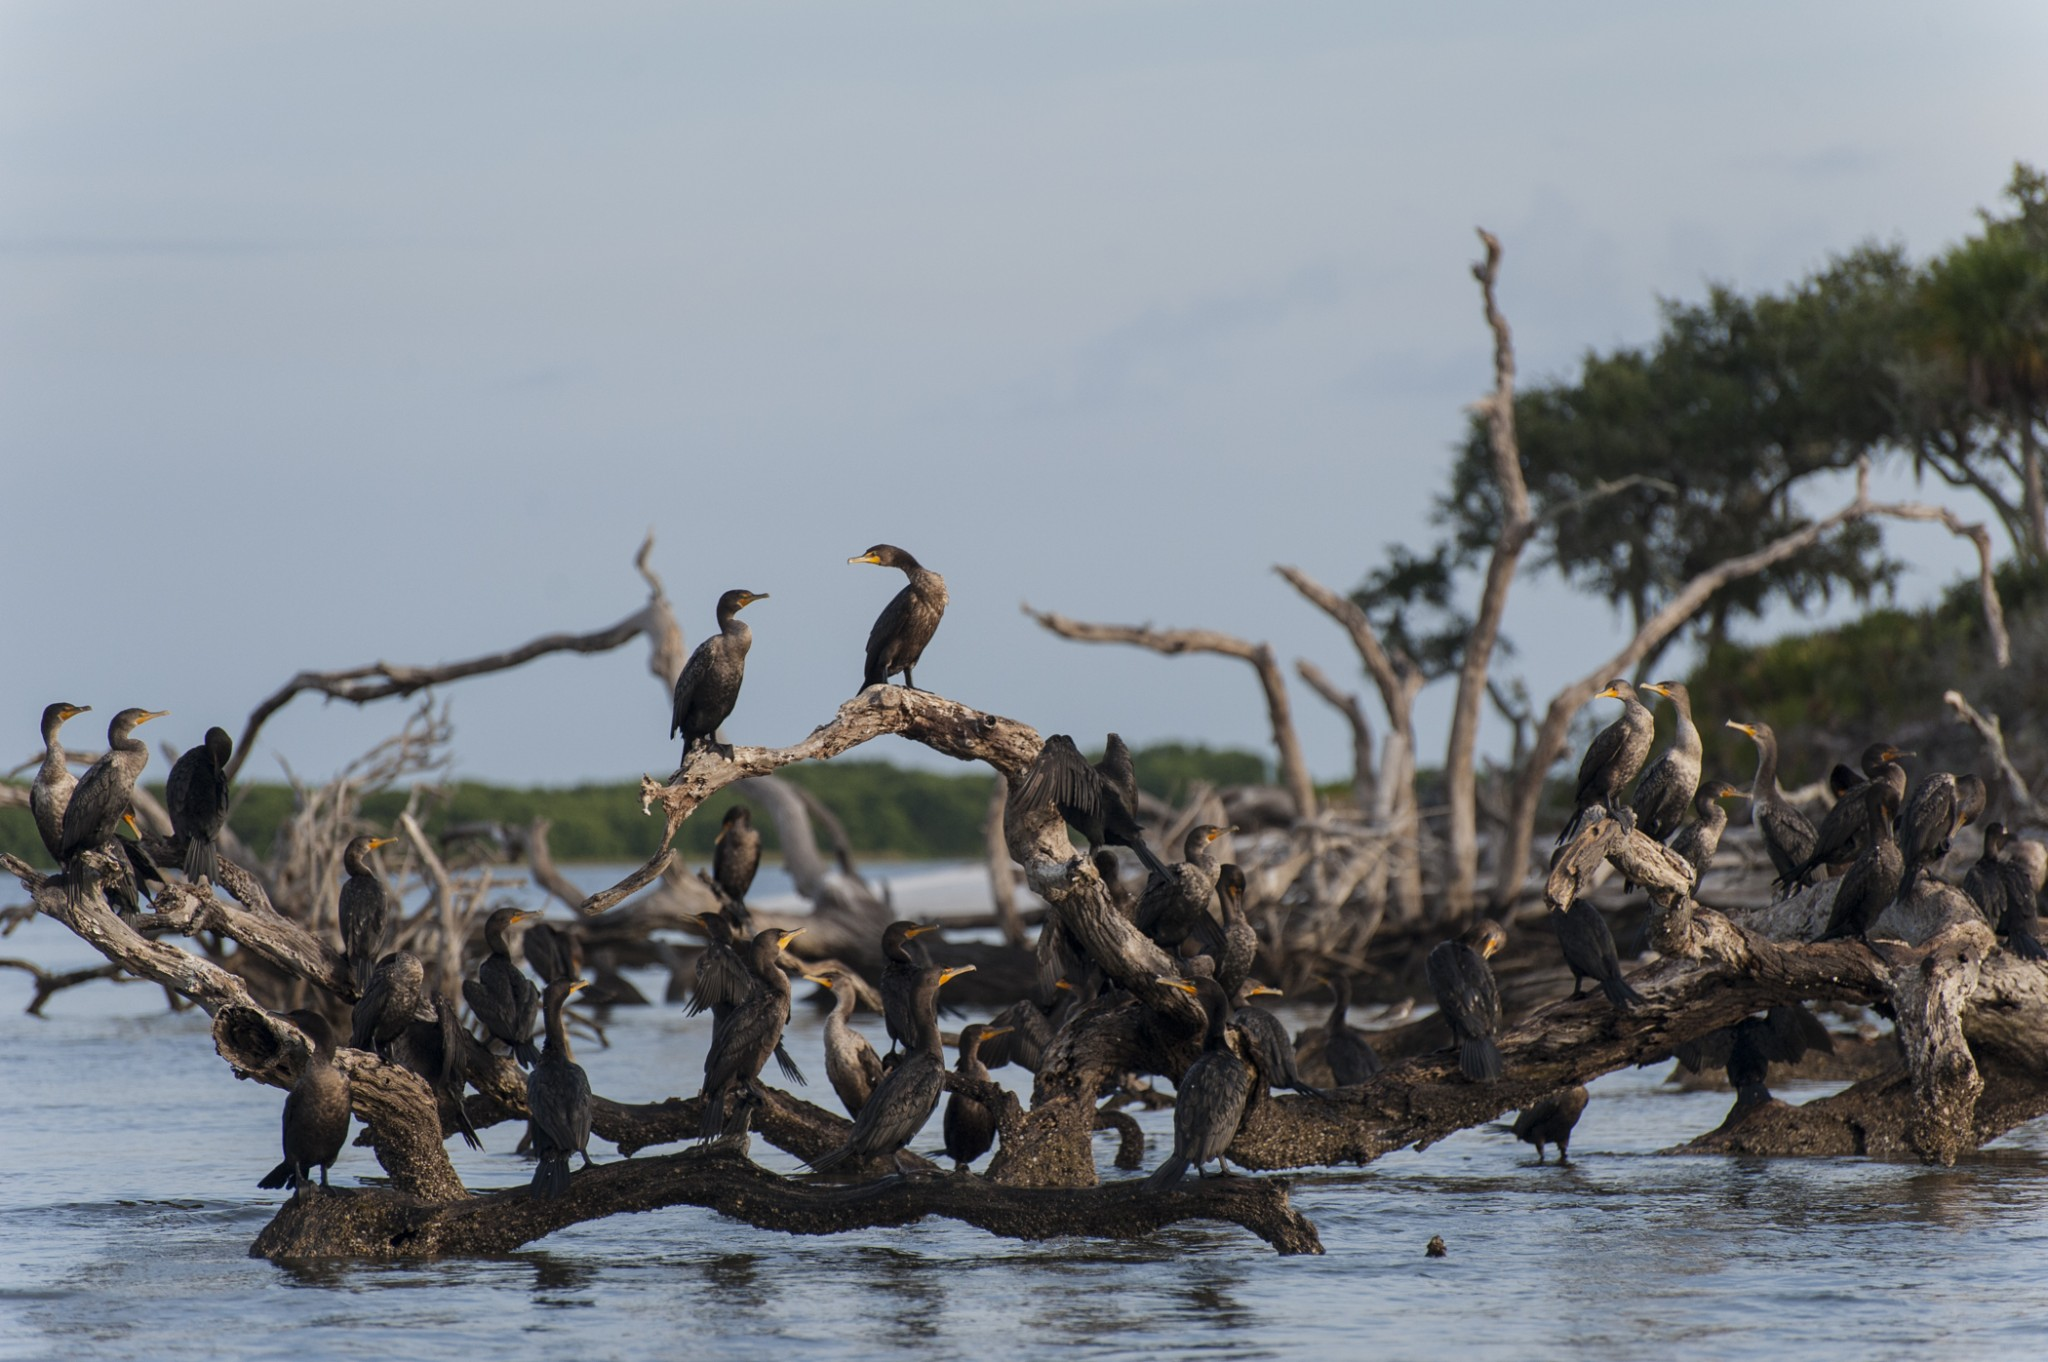 birds on dead wood in water